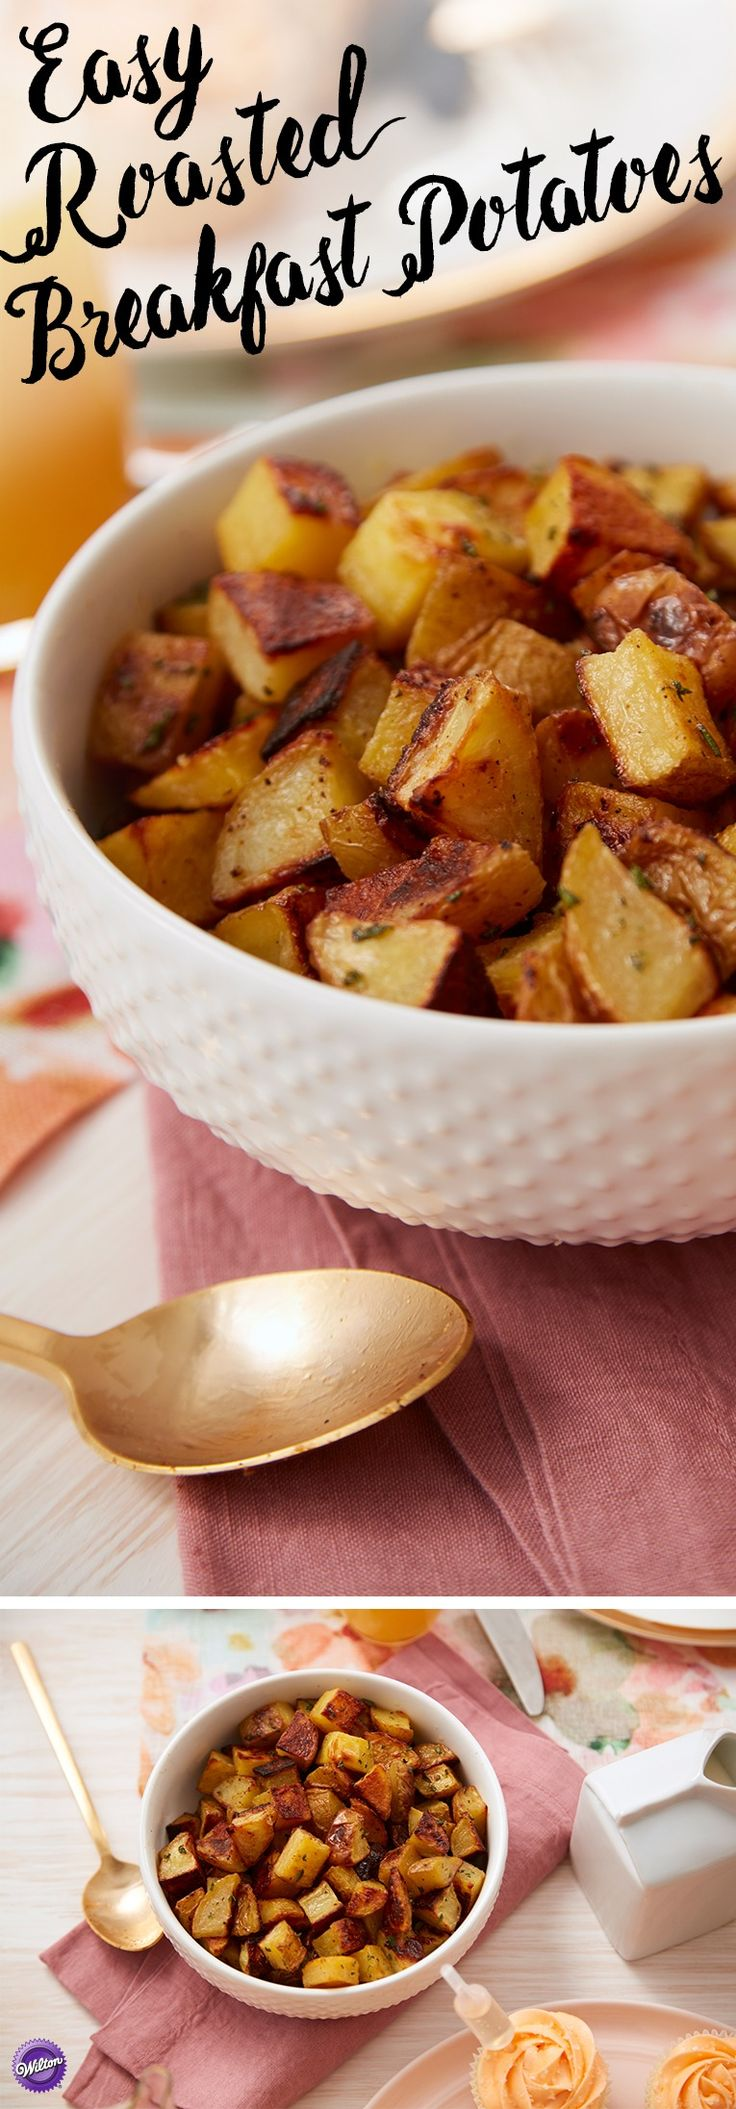 Easy Roasted Breakfast Potatoes - No breakfast or brunch is complete without a satisfyingly savory potato dish. This quick and easy recipe is the perfect complement to pancakes, eggs or fruit at any meal. Learn how to make this easy dish and surprise your mom for Mother's Day with breakfast in bed, or feed the whole family with a big batch of perfectly seasoned roasted breakfast potatoes when you use the Wilton Mega Baking Sheet.